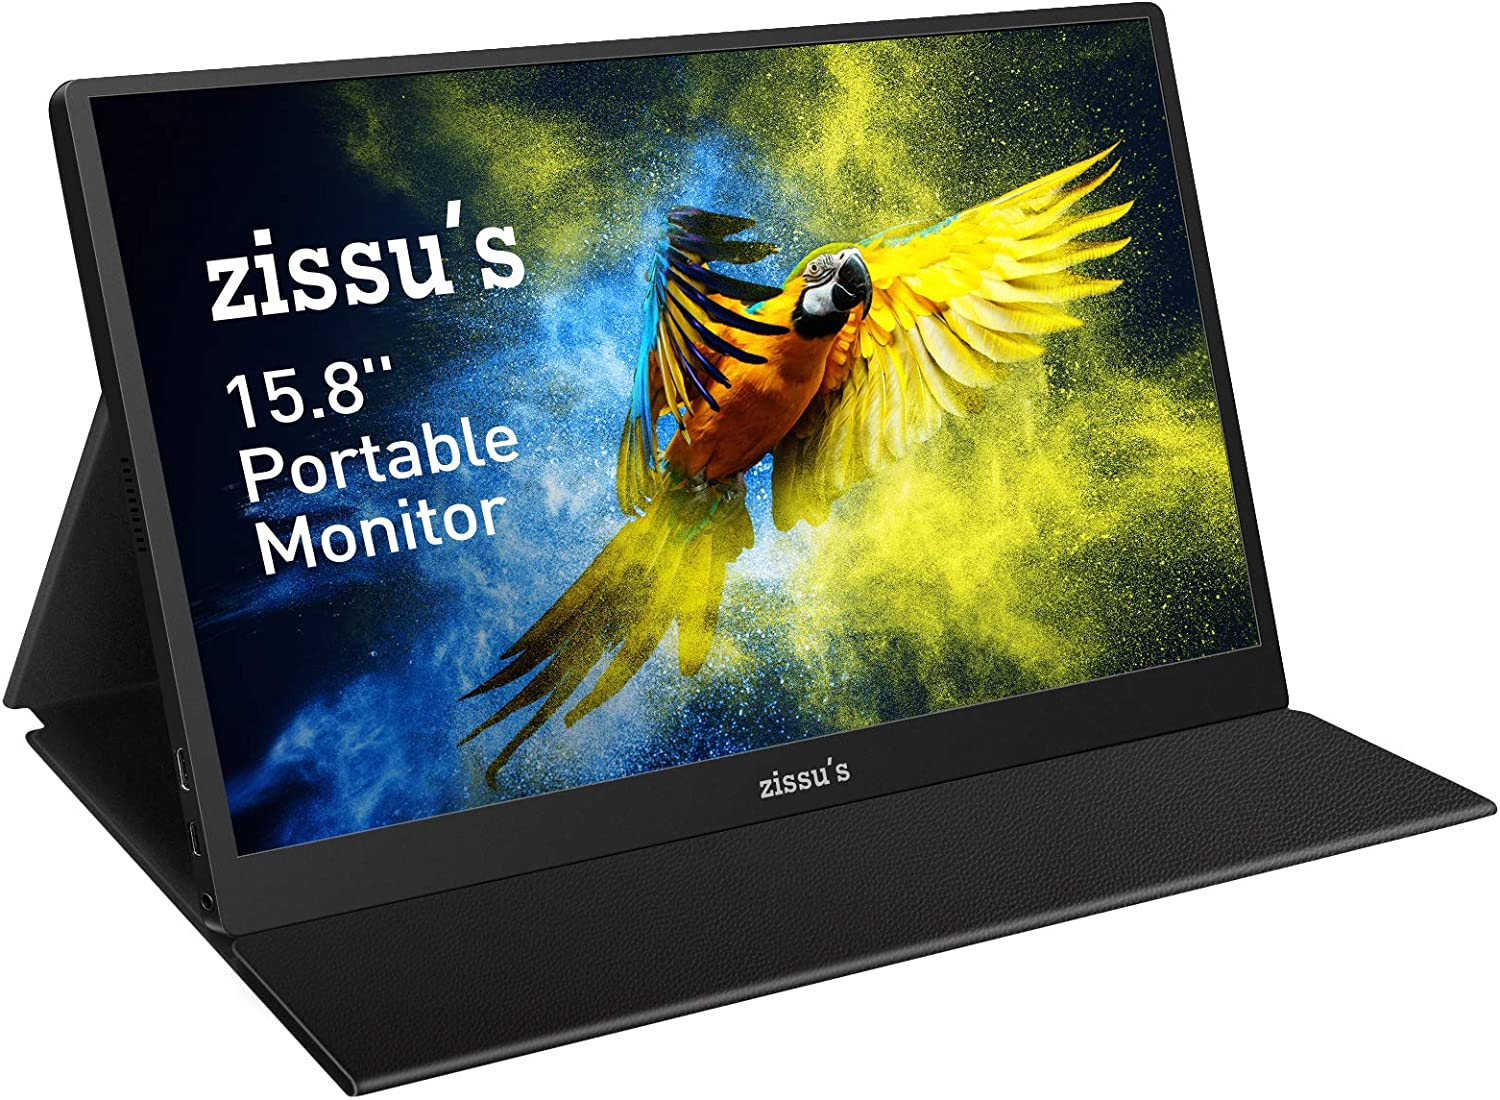 """Zissu's 15.8"""" Portable Monitor with Cover- Full HD 1080P HDR IPS Screen with 178° Full View, Lightweight & Portable Laptop Monitor with Dual USB-C Ports, Ideal for Laptop PC Switch PS4 Xbox"""